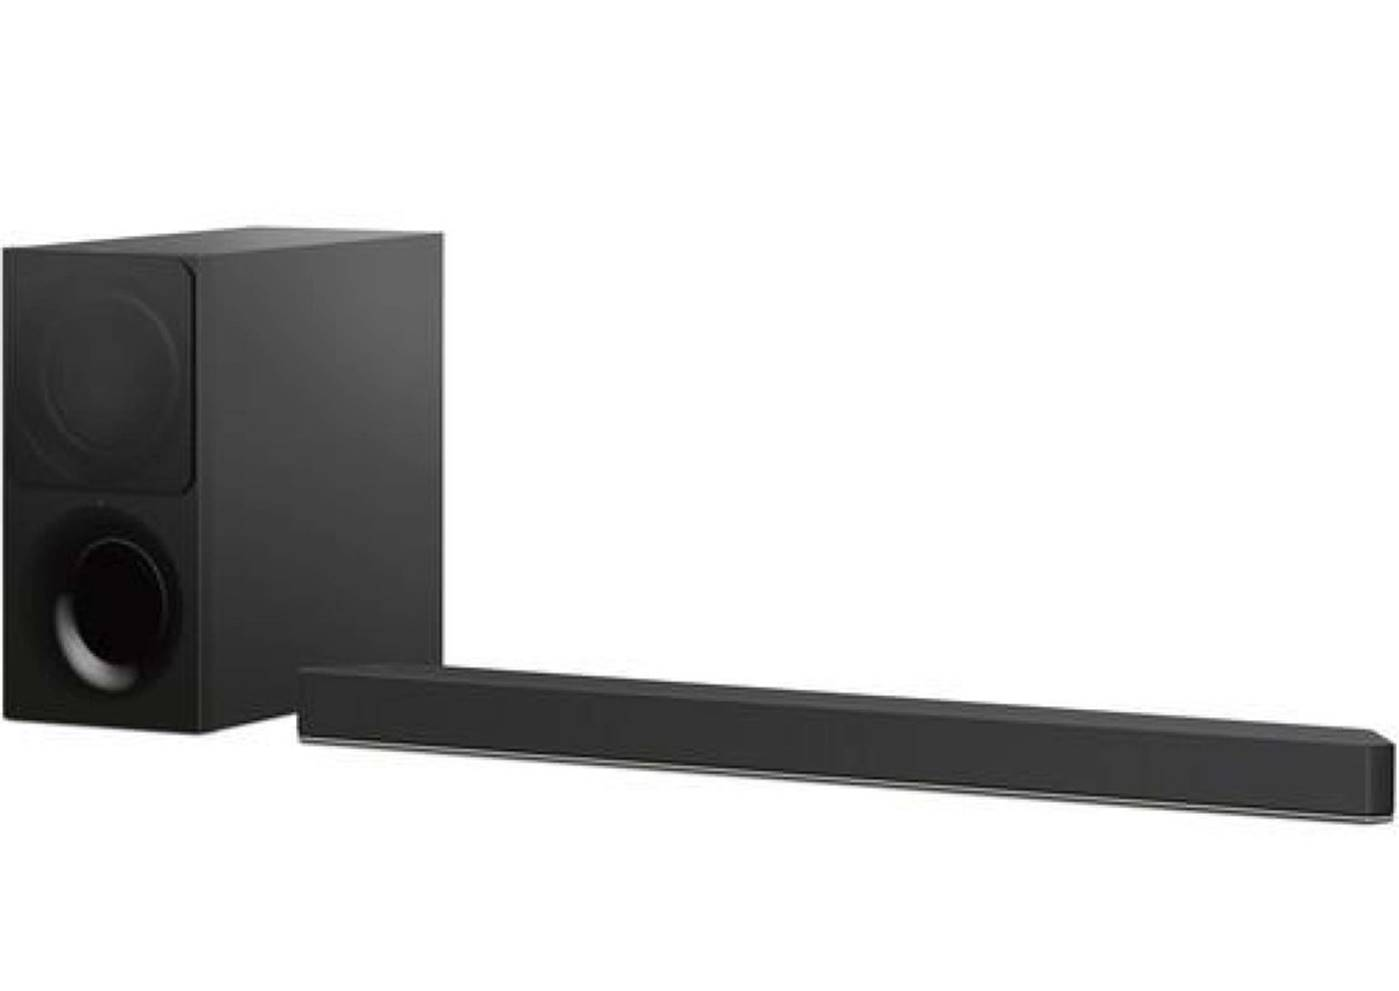 Sony HT-X9000F Home Theater System